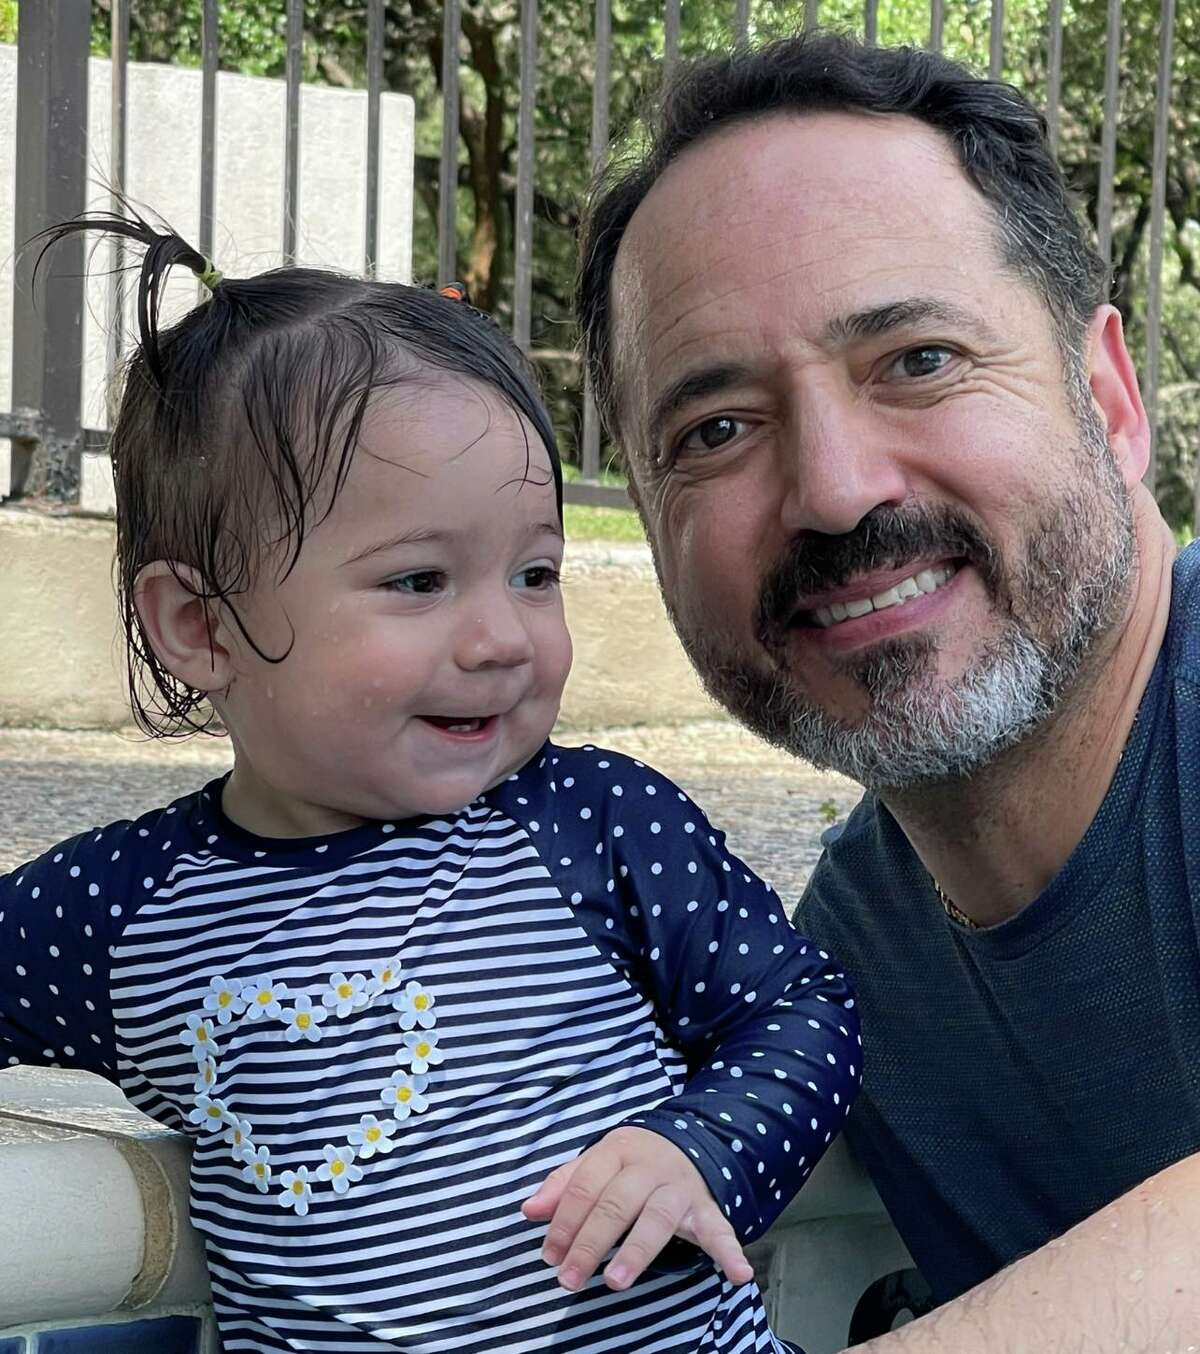 In social media posts last weekend, State Sen. José Menéndez shared that his granddaughter, Adalisa, tested positive for COVID-19 despite his entire family being vaccinated. Yesterday he announced he and two other family members have tested positive.